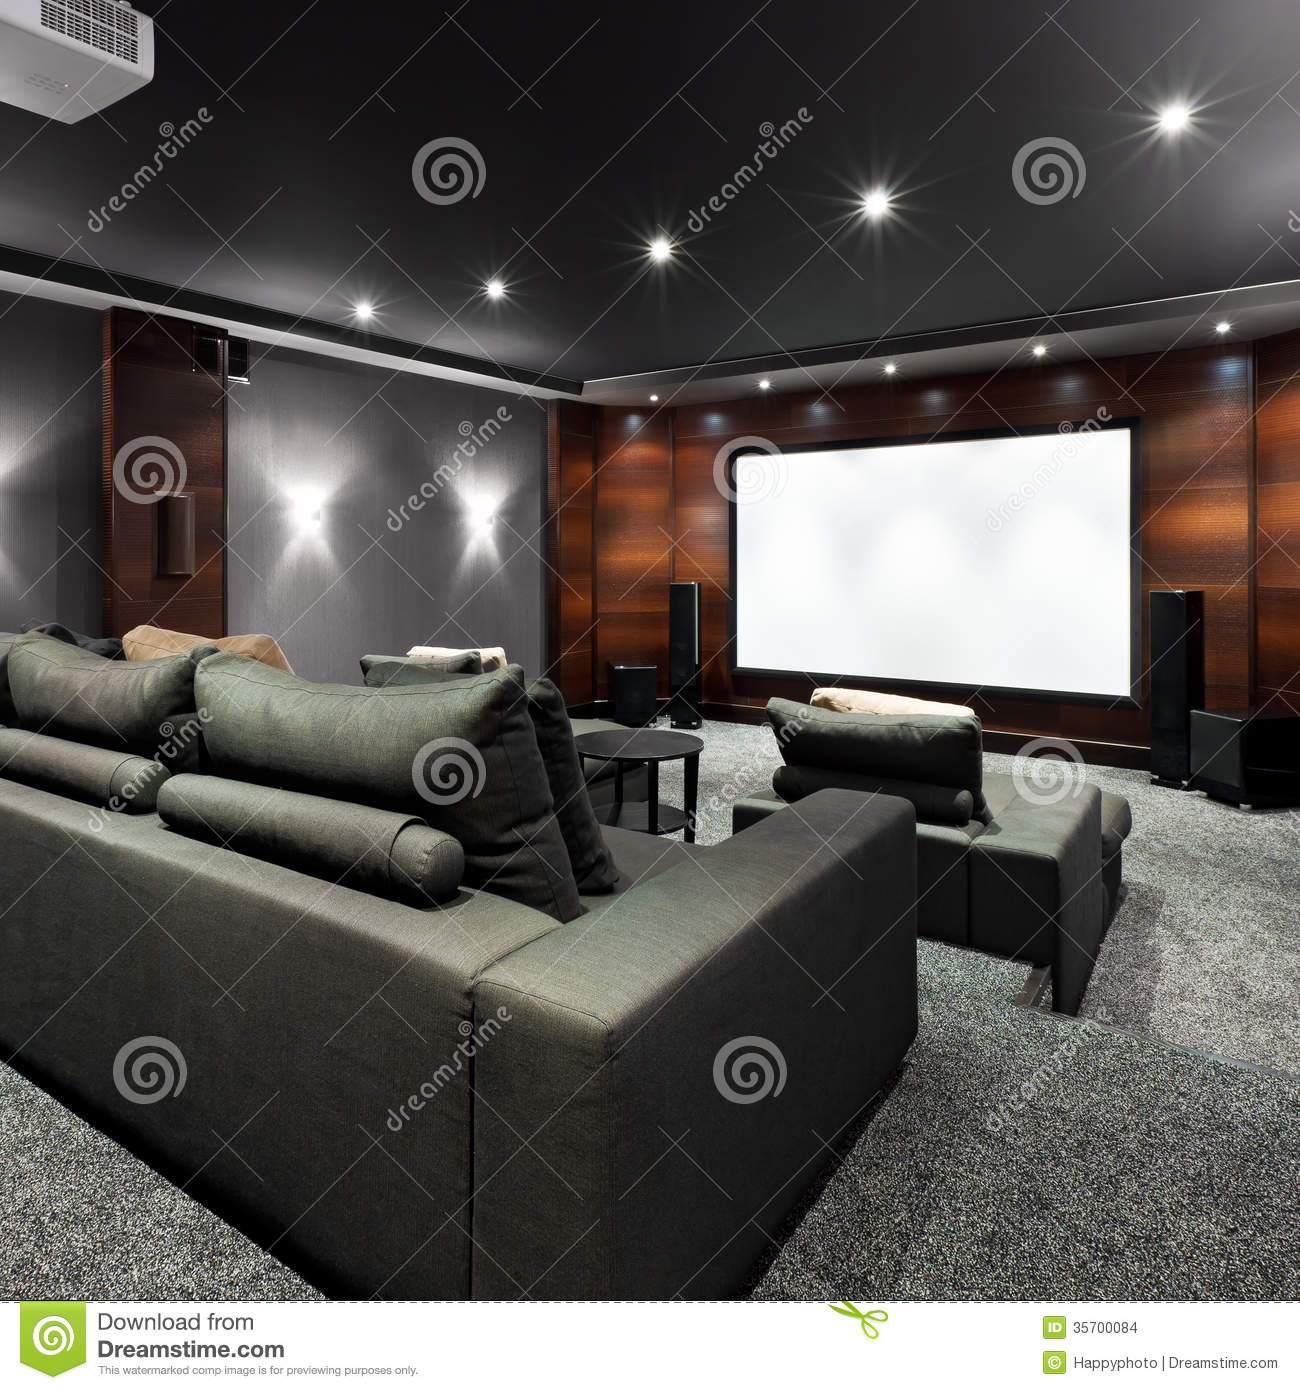 Stock Images: Home Theater Interior. Image: 35700084